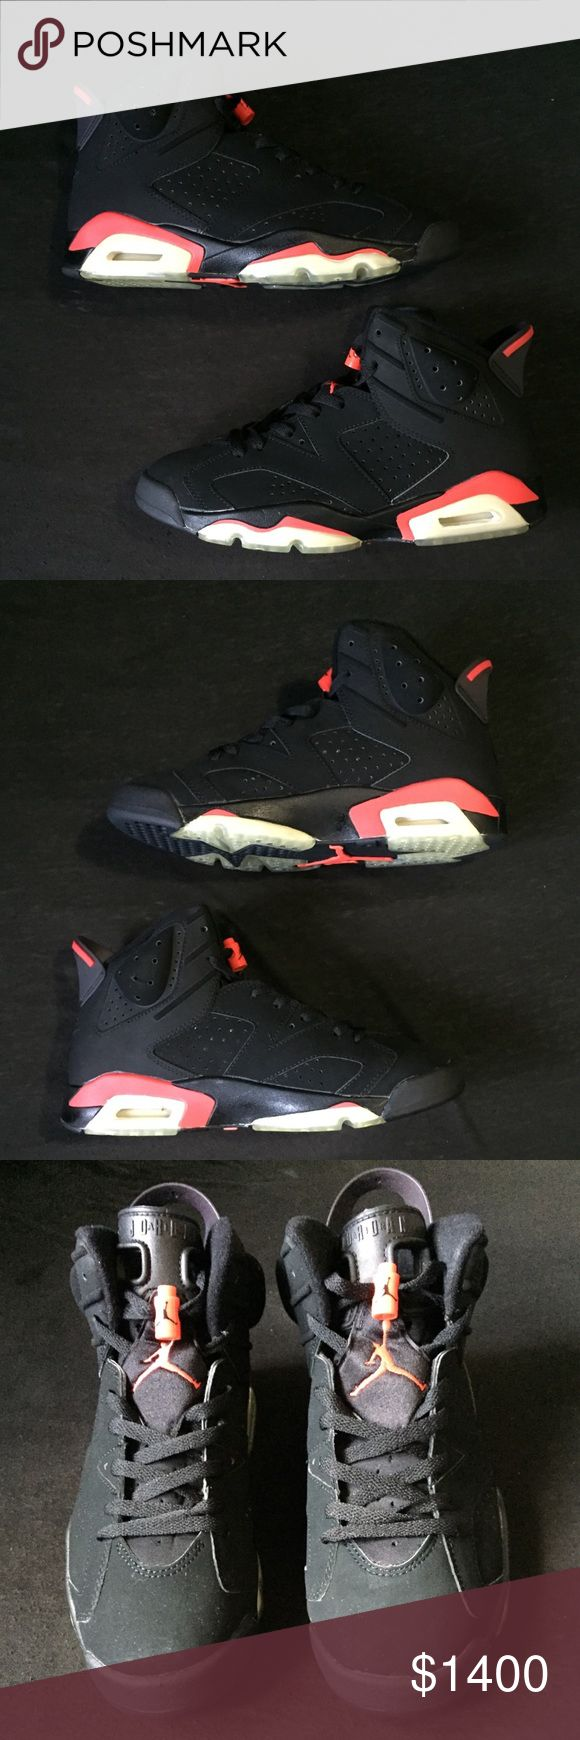 2000 Nike Air Jordan 6 Infrared Mens Sz 8.5 Nike Air Jordan 6 Retro Infrared Rare and hard to find  Year 2000 release  Size: Mens US 8.5  Includes: Original box, Lace locks, Retro card  Condition: Brand New Deadstock  (w/ midsole hairline cracked)  100% AUTHENTIC Jordan Shoes